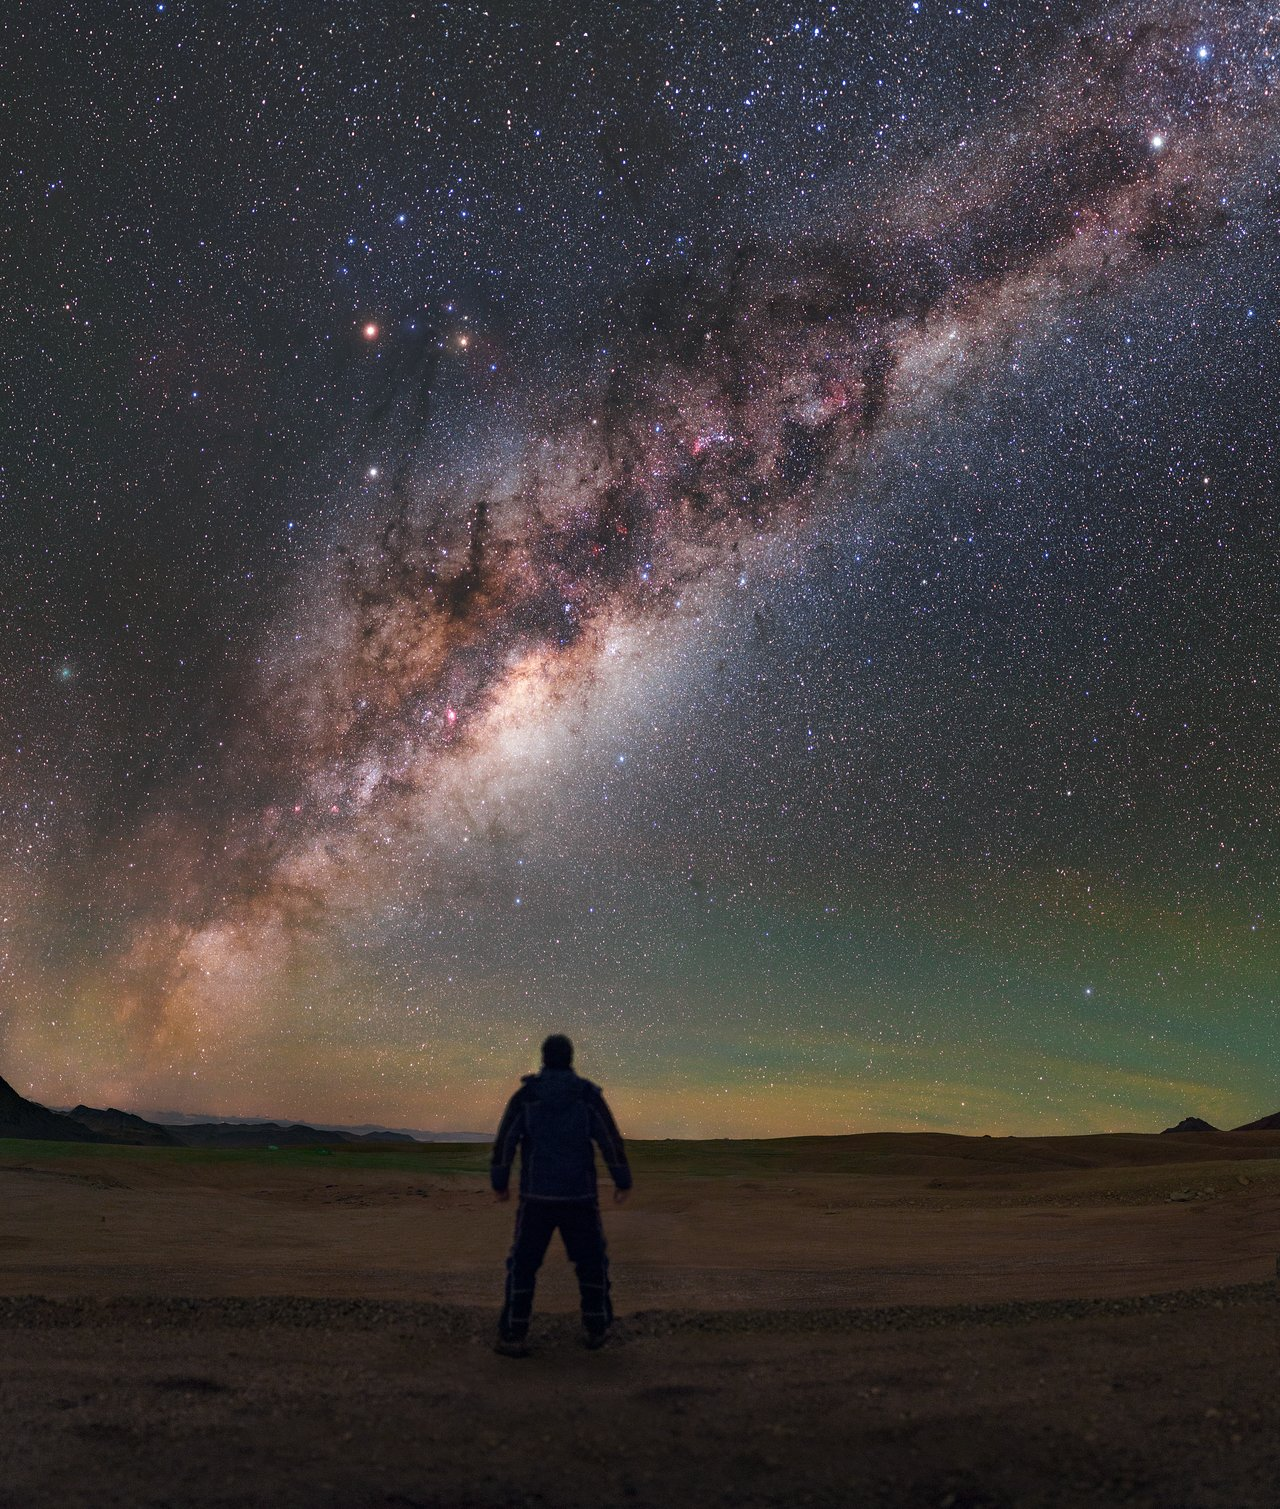 Man meets Milky Way | ESO